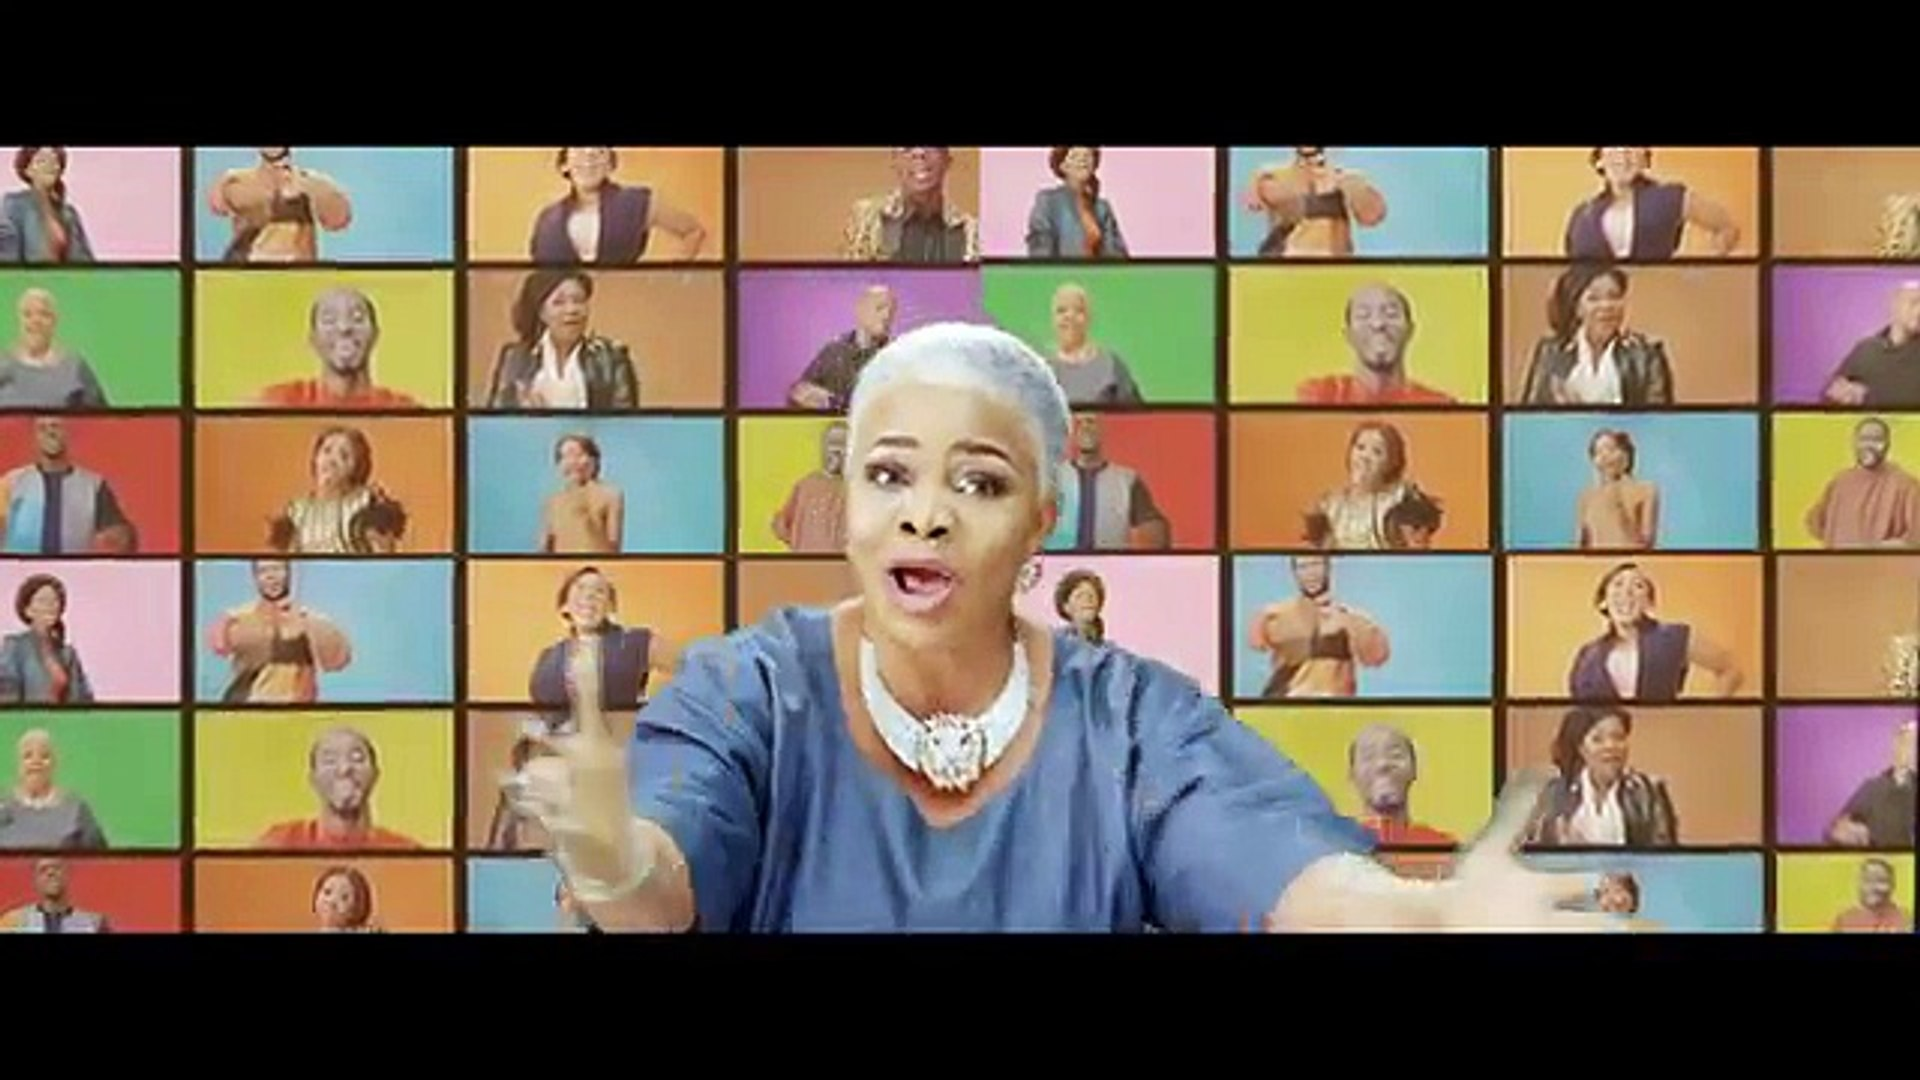 737 Moments - The Music VideoTooxclusive Nigeria Limited